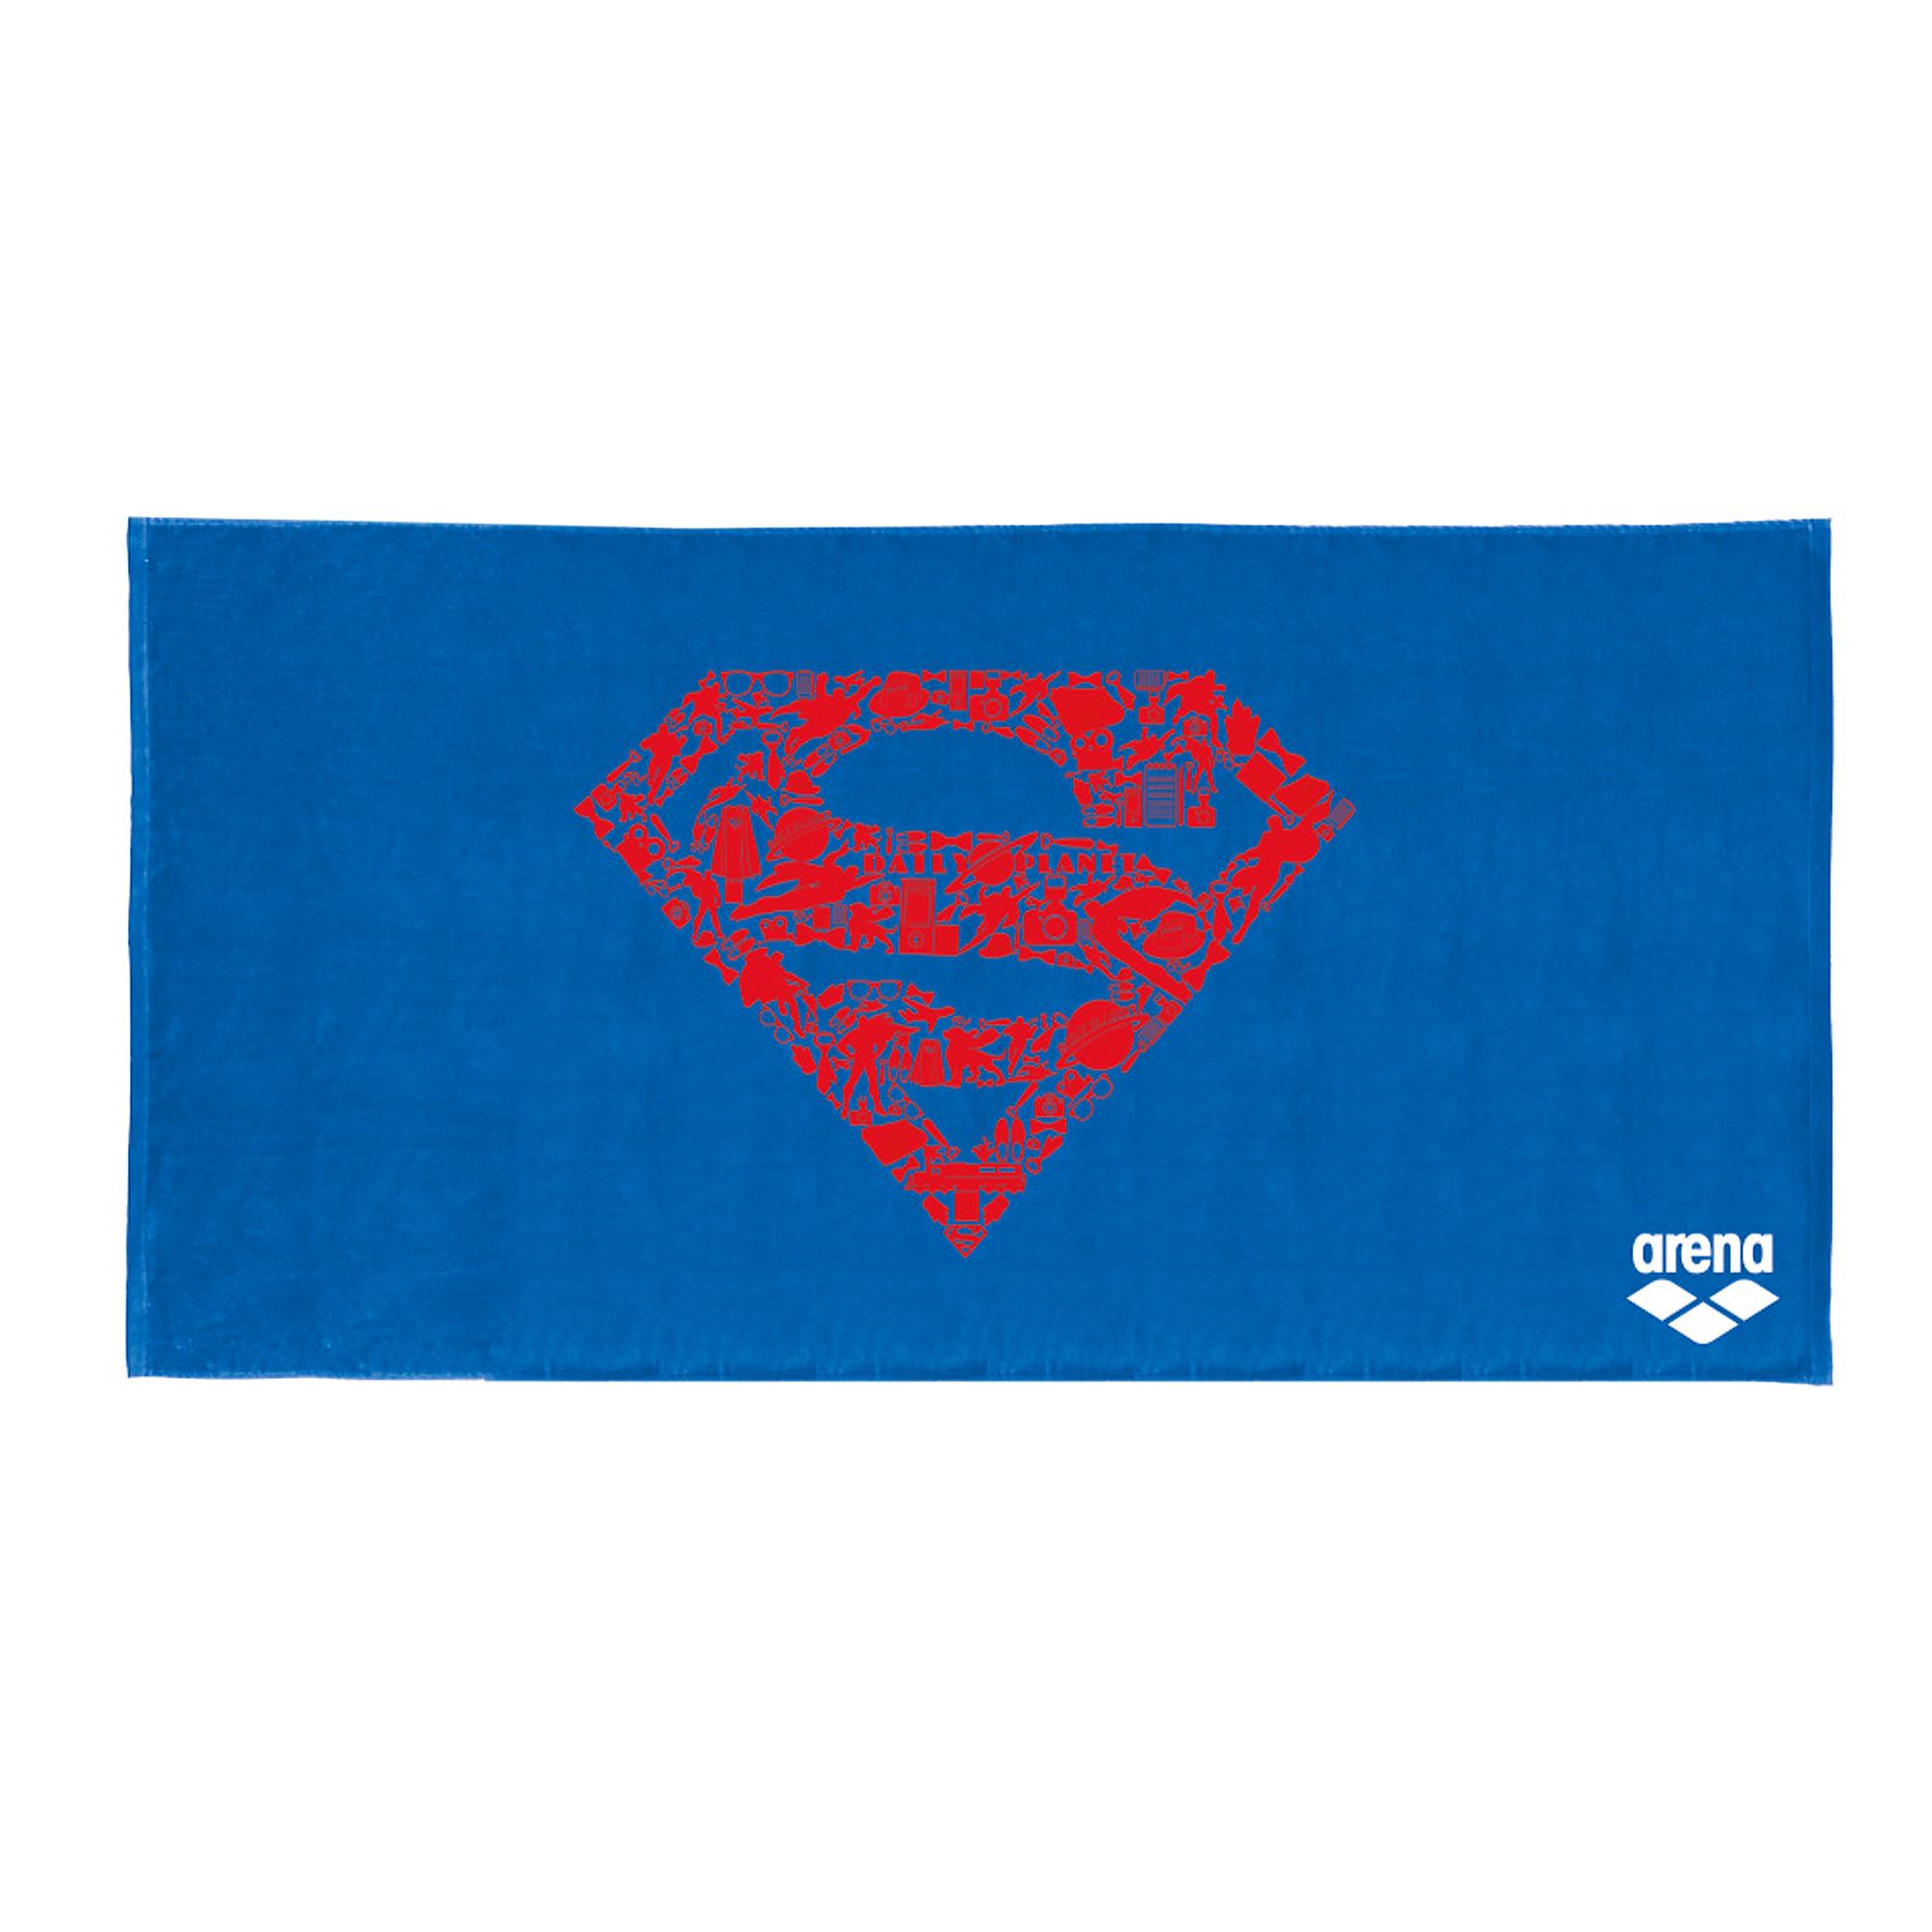 Towel Arena Super Hero Superman 001545/700 (100x150 cm; blue color) 001545/700